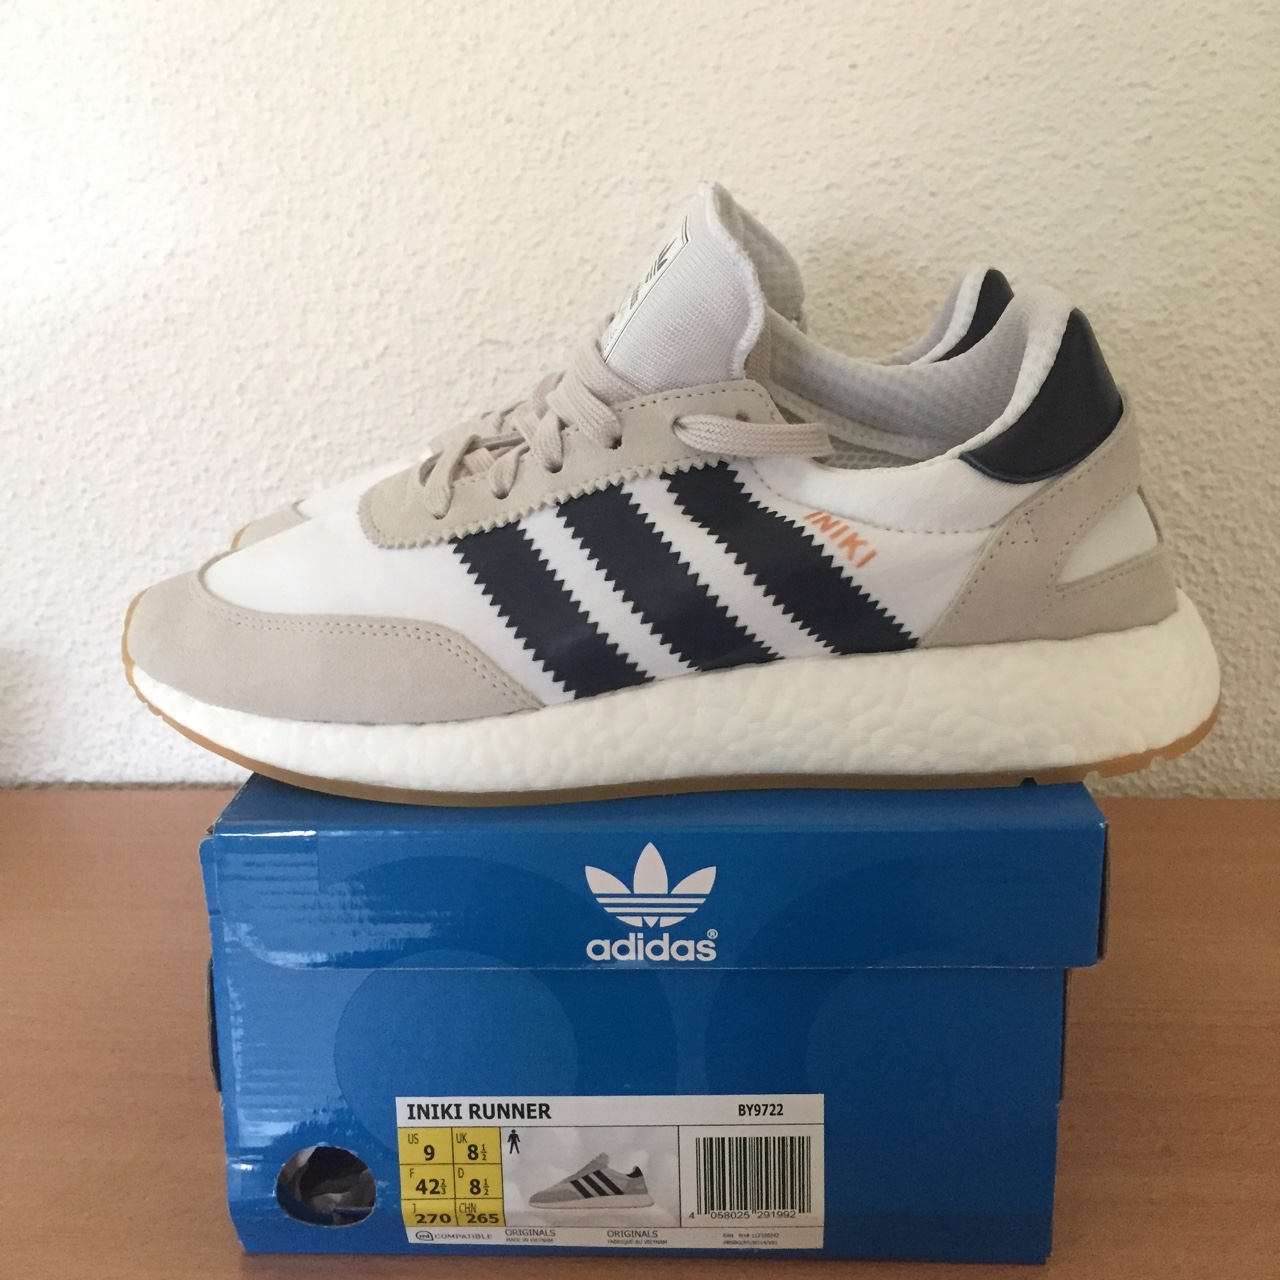 adidas Iniki Runner US 9 | EUR 42 23 | UK Depop